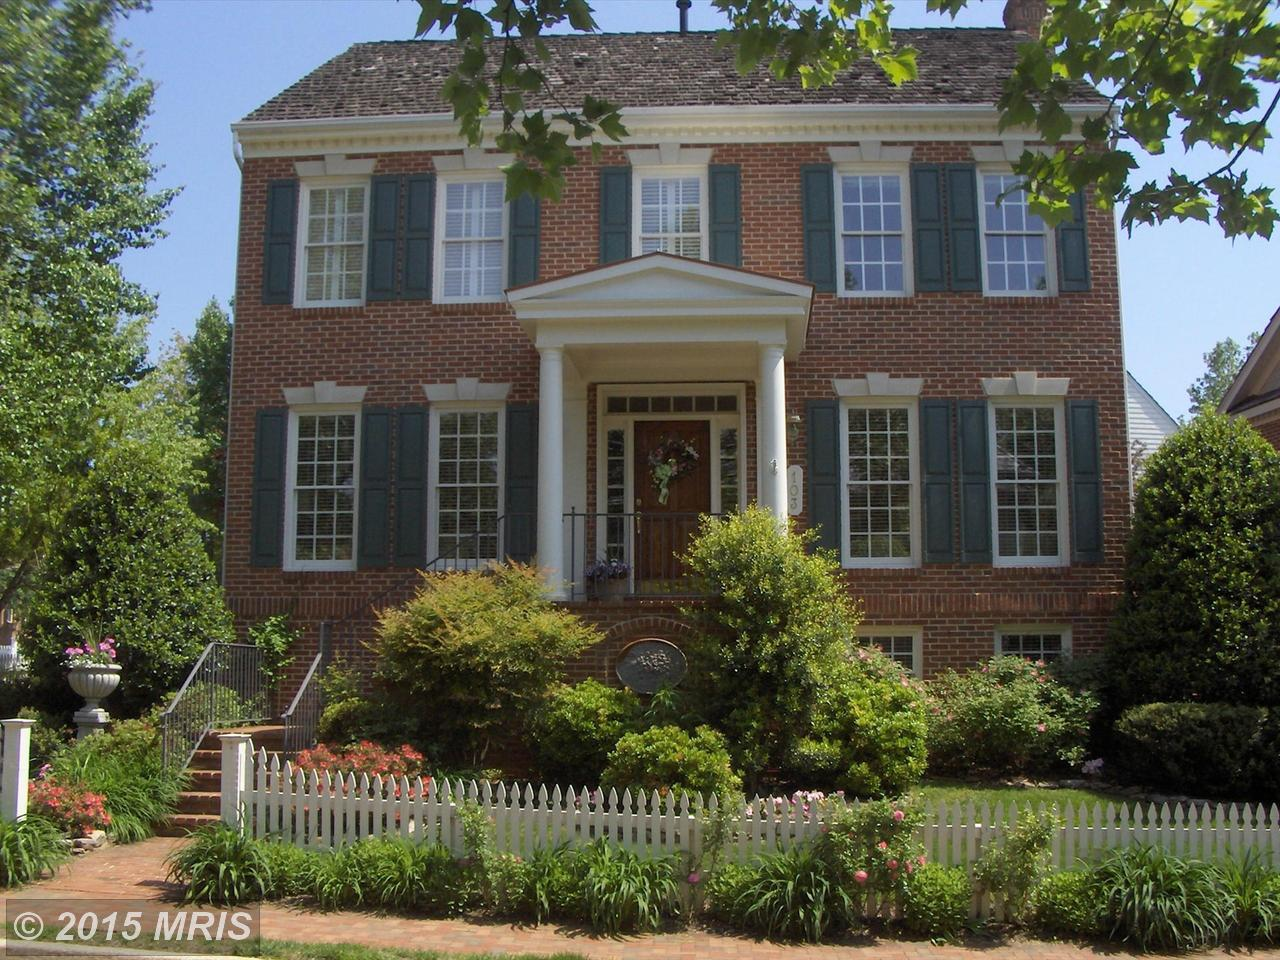 luxury homes for sale in gaithersburg md gaithersburg mls gaithersburg real estate